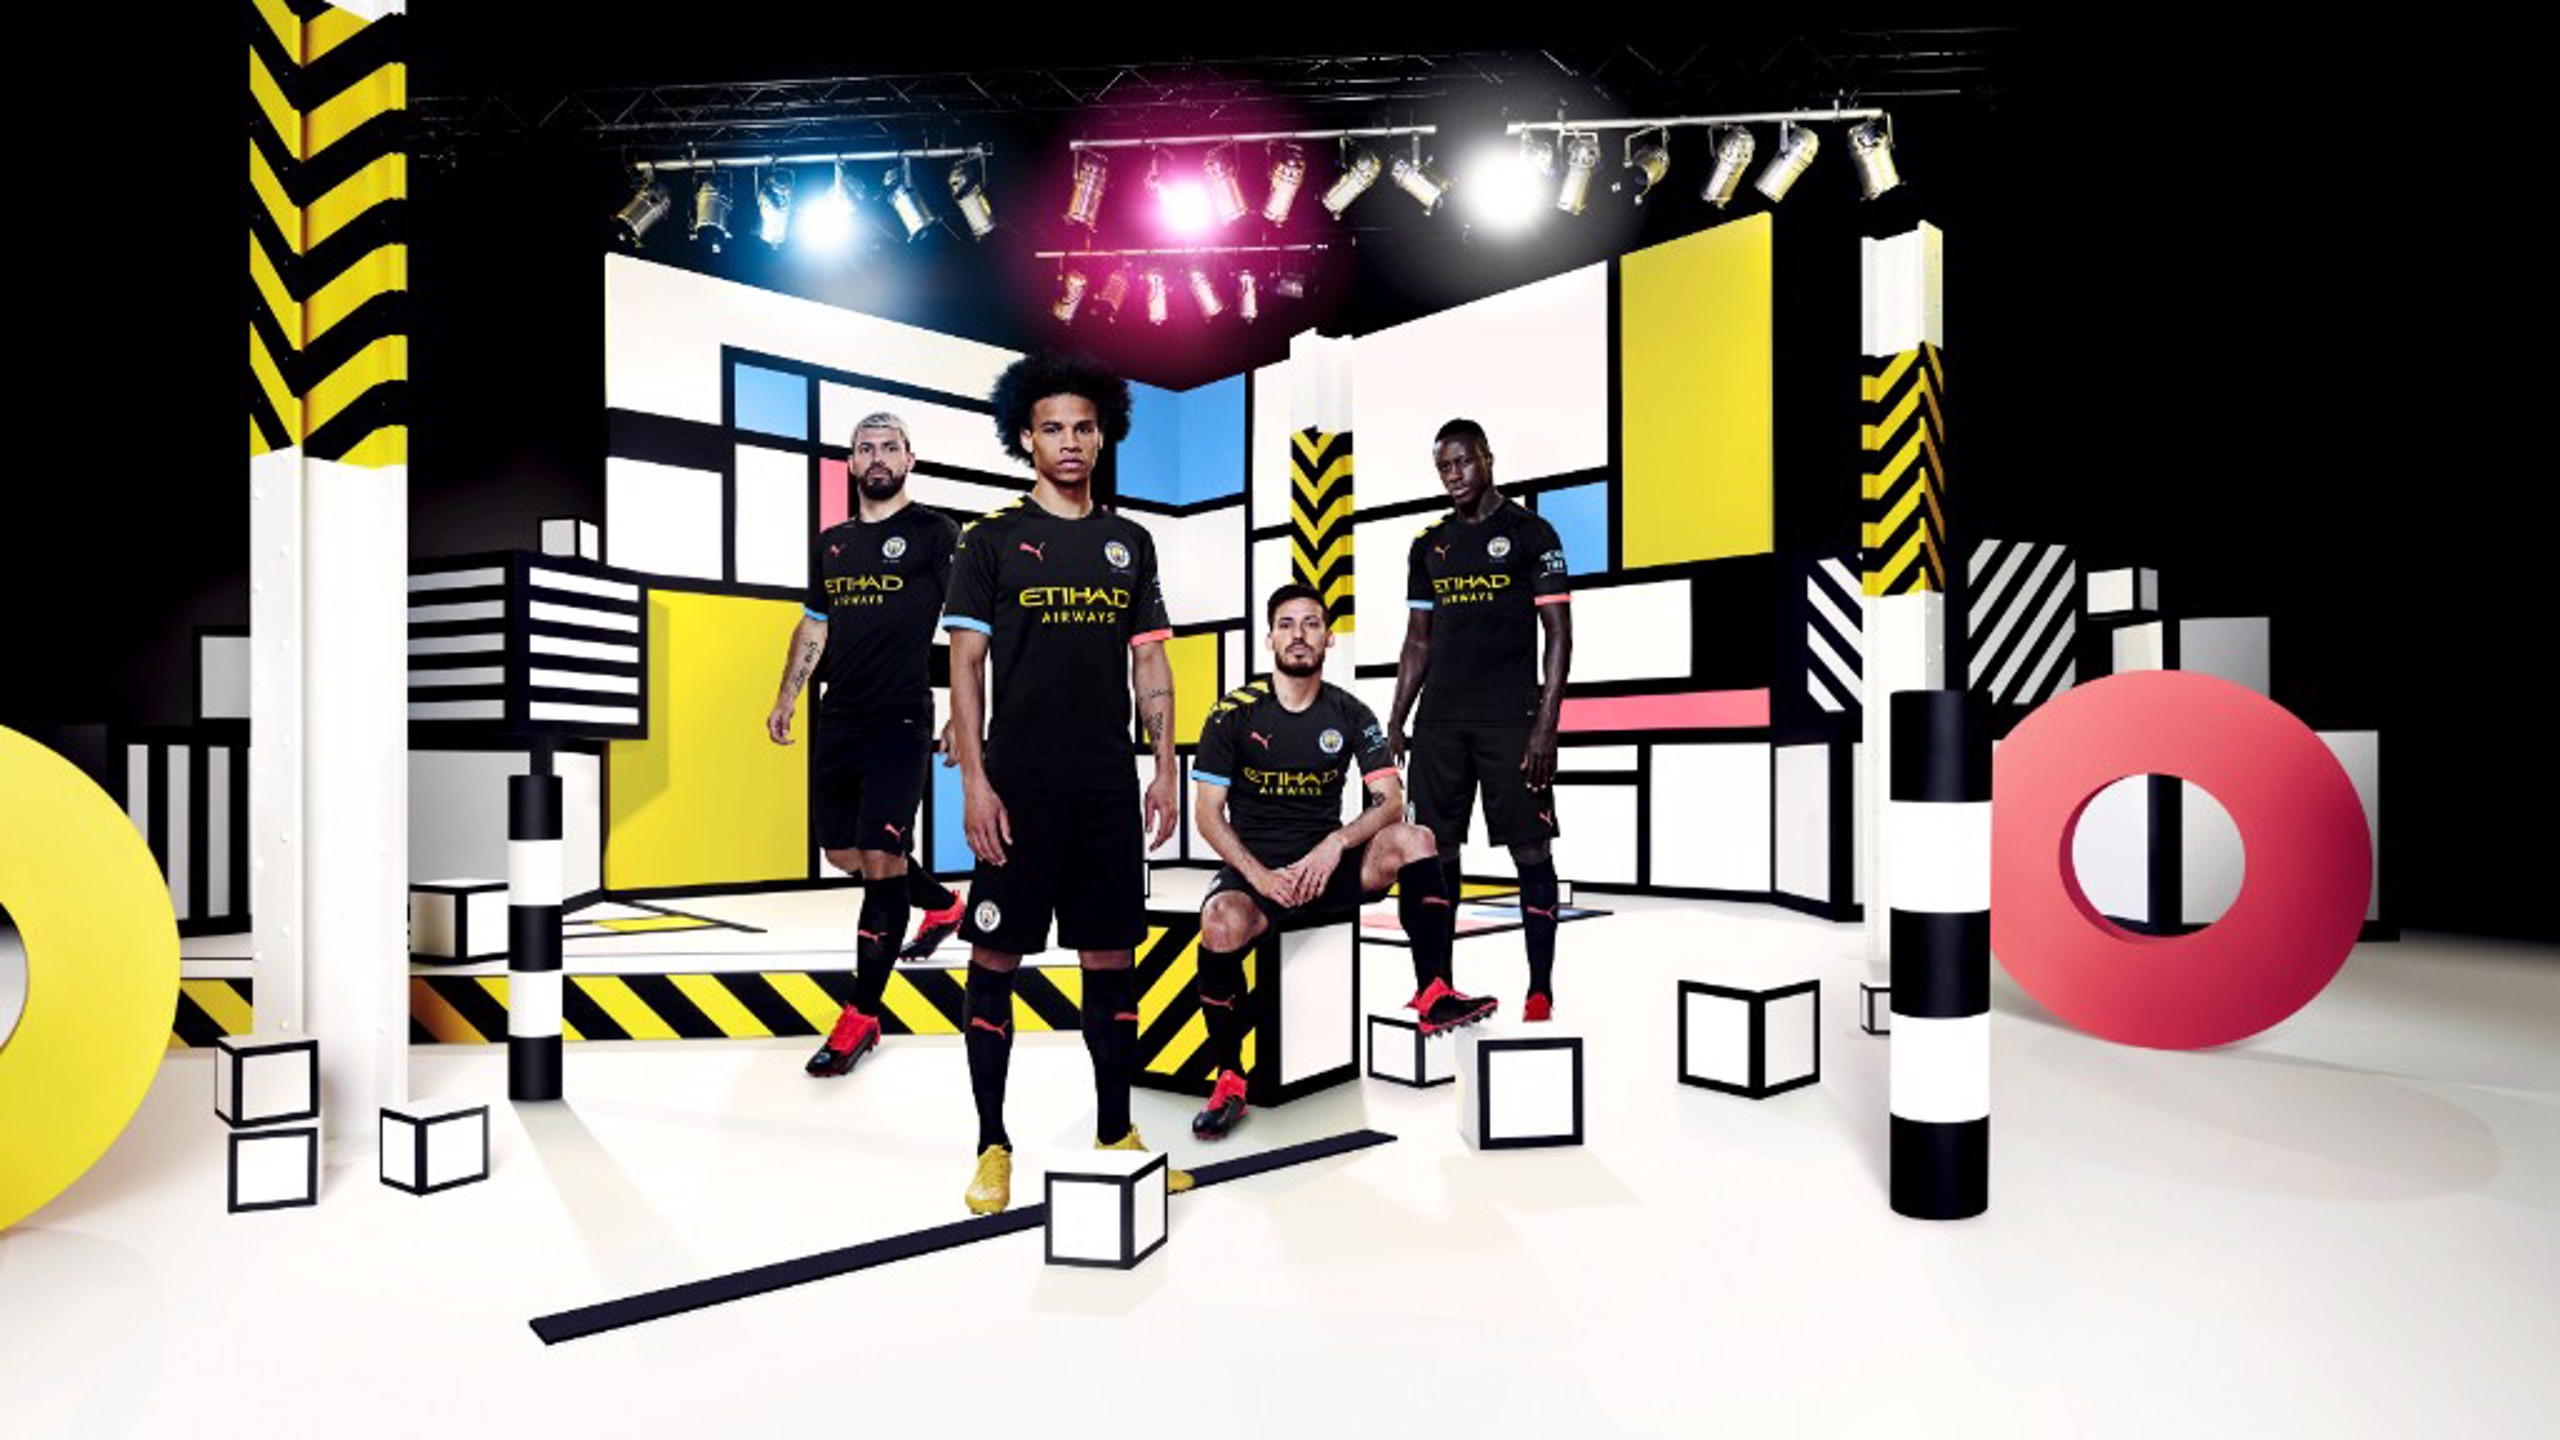 SQUAD GOALS: Sergio Aguero, Leroy Sane, David Silva and Benjamin Mendy sport our new 2019-20 PUMA away kit